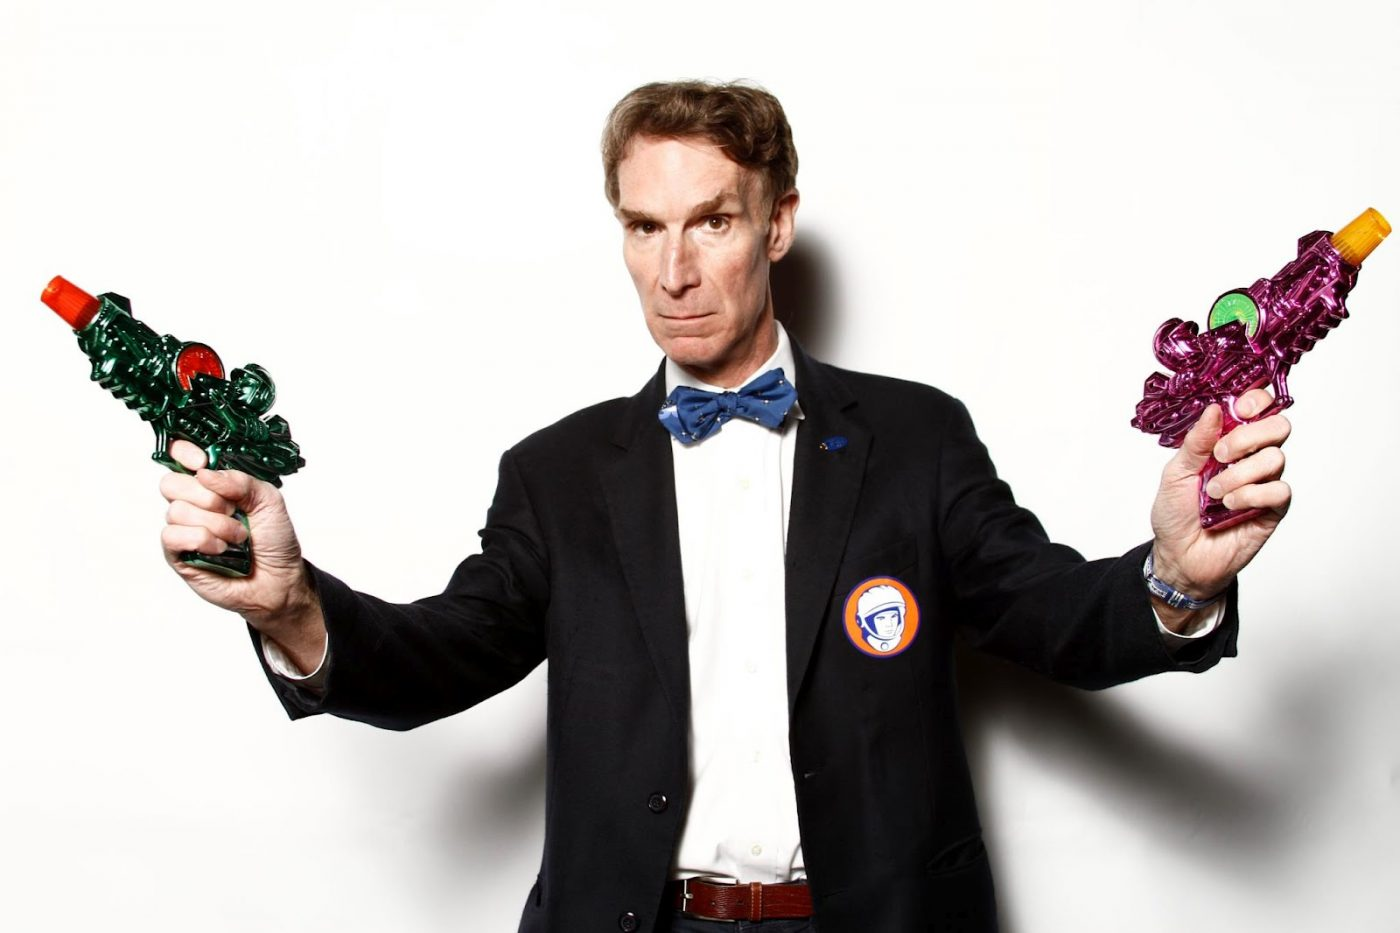 Bill Nye with water guns ready to explain exploding smartphones